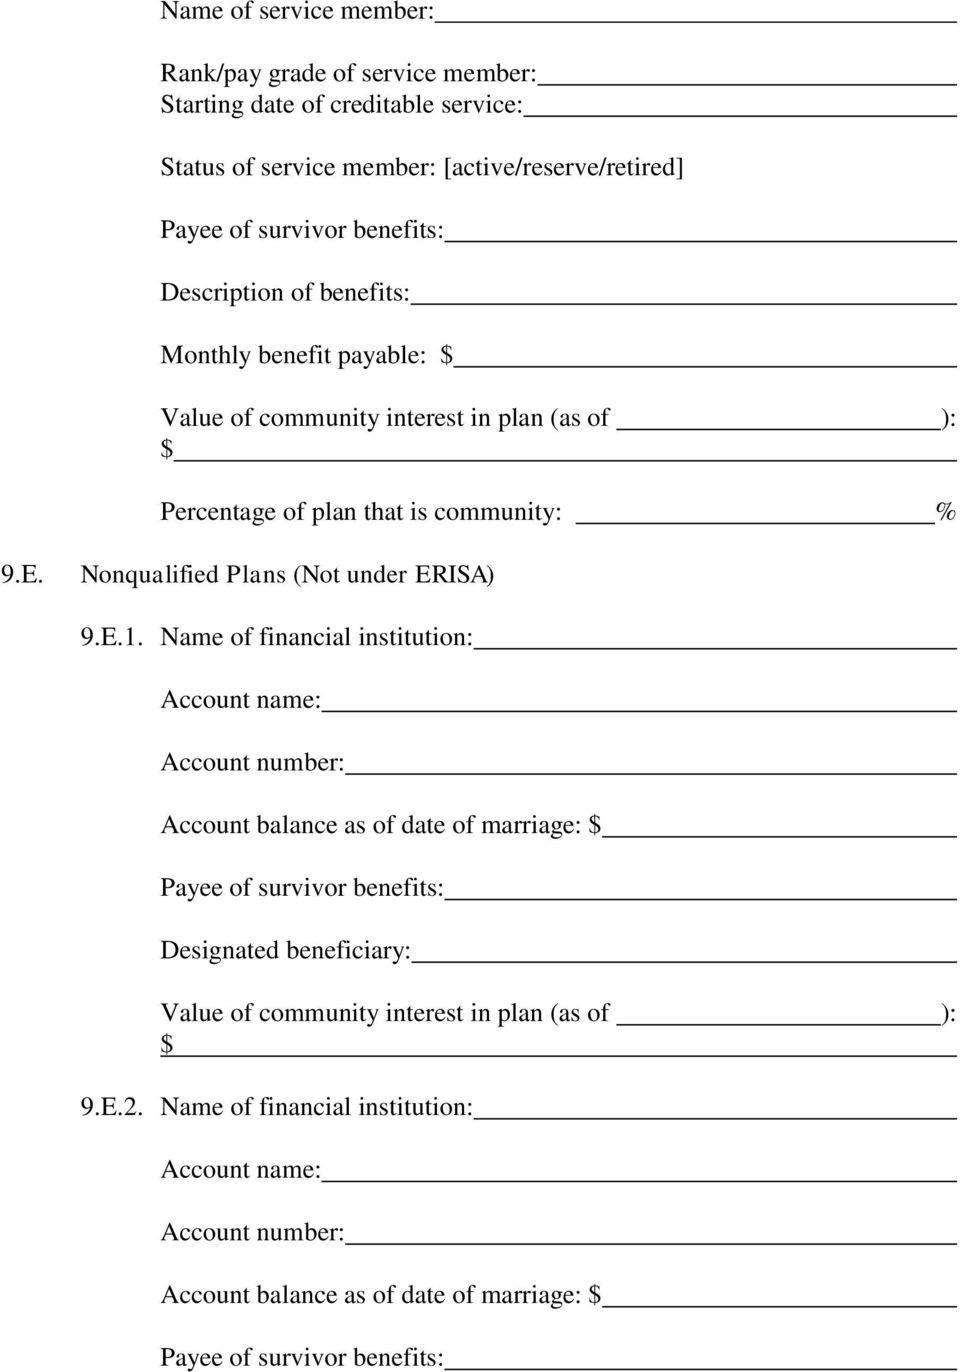 Nonqualified Plans (Not under ERISA) 9.E.1.